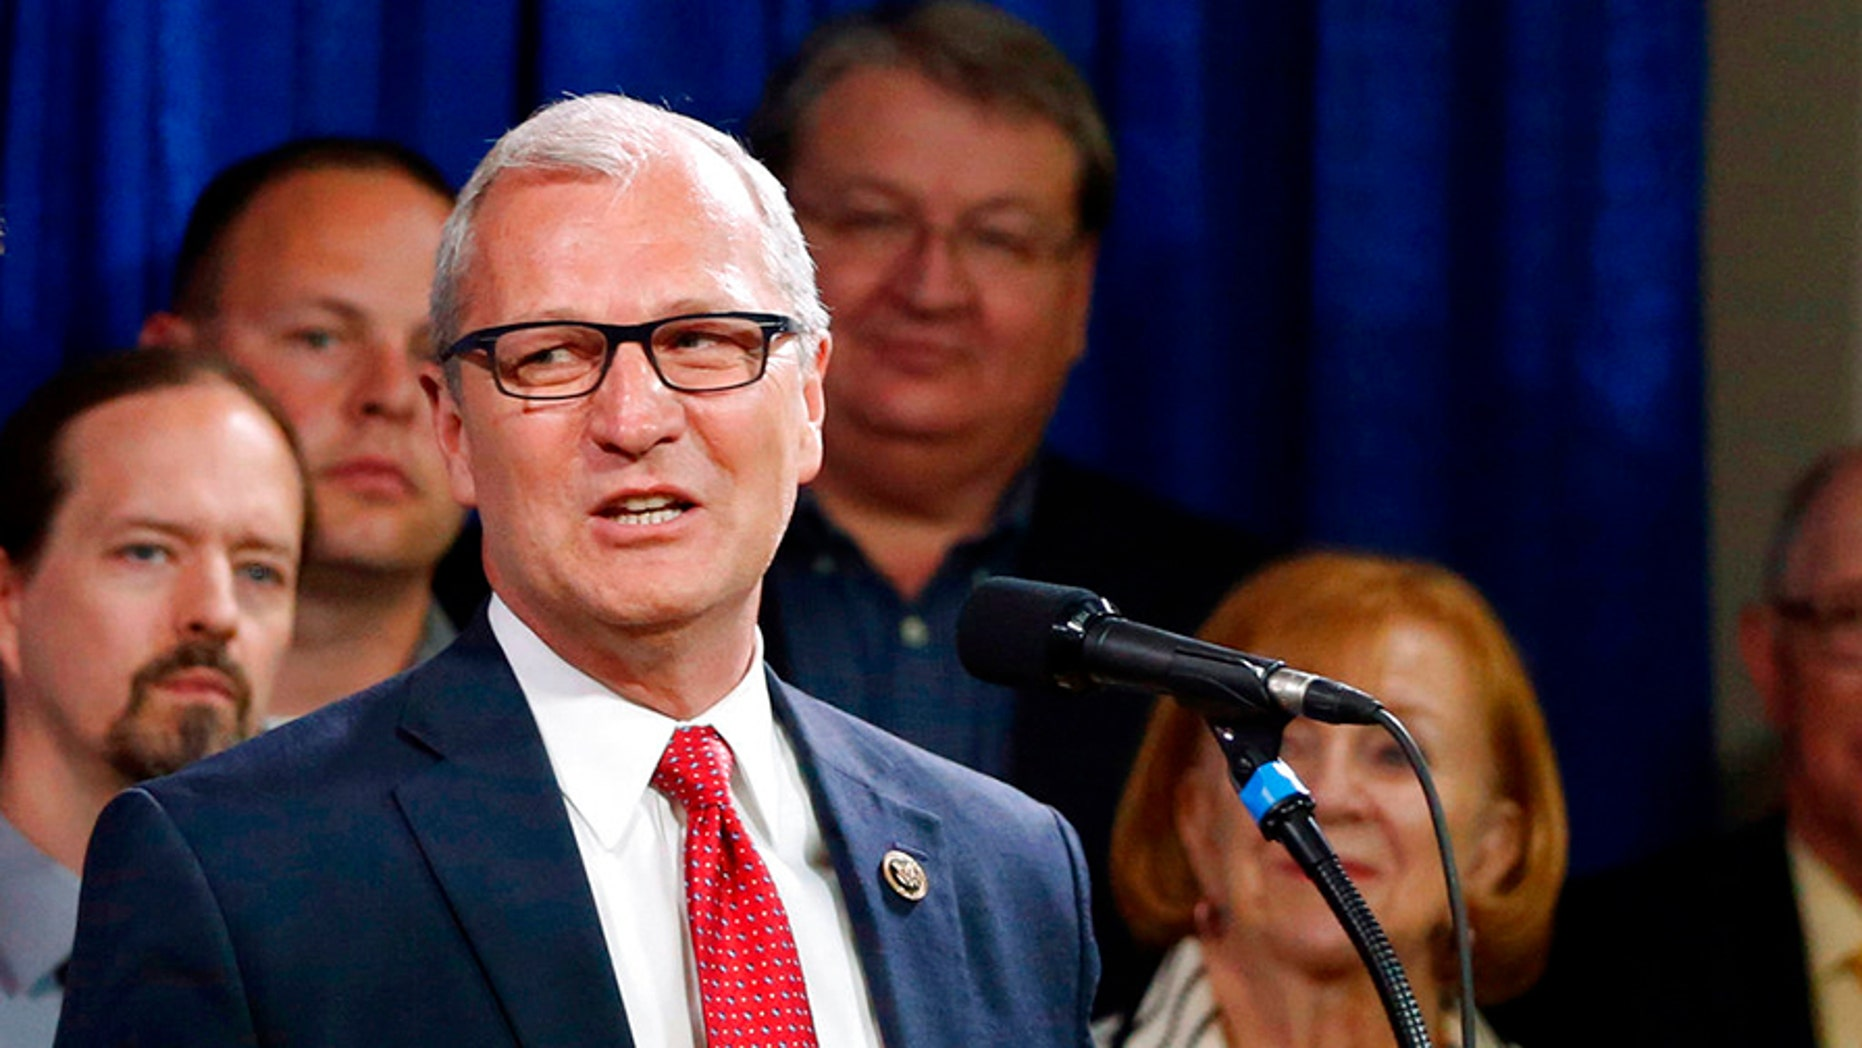 Rep. Kevin Cramer is expected Saturday to win his state party's endorsement in Republicans' bid to unseat Democratic Sen. Heidi Heitkamp.